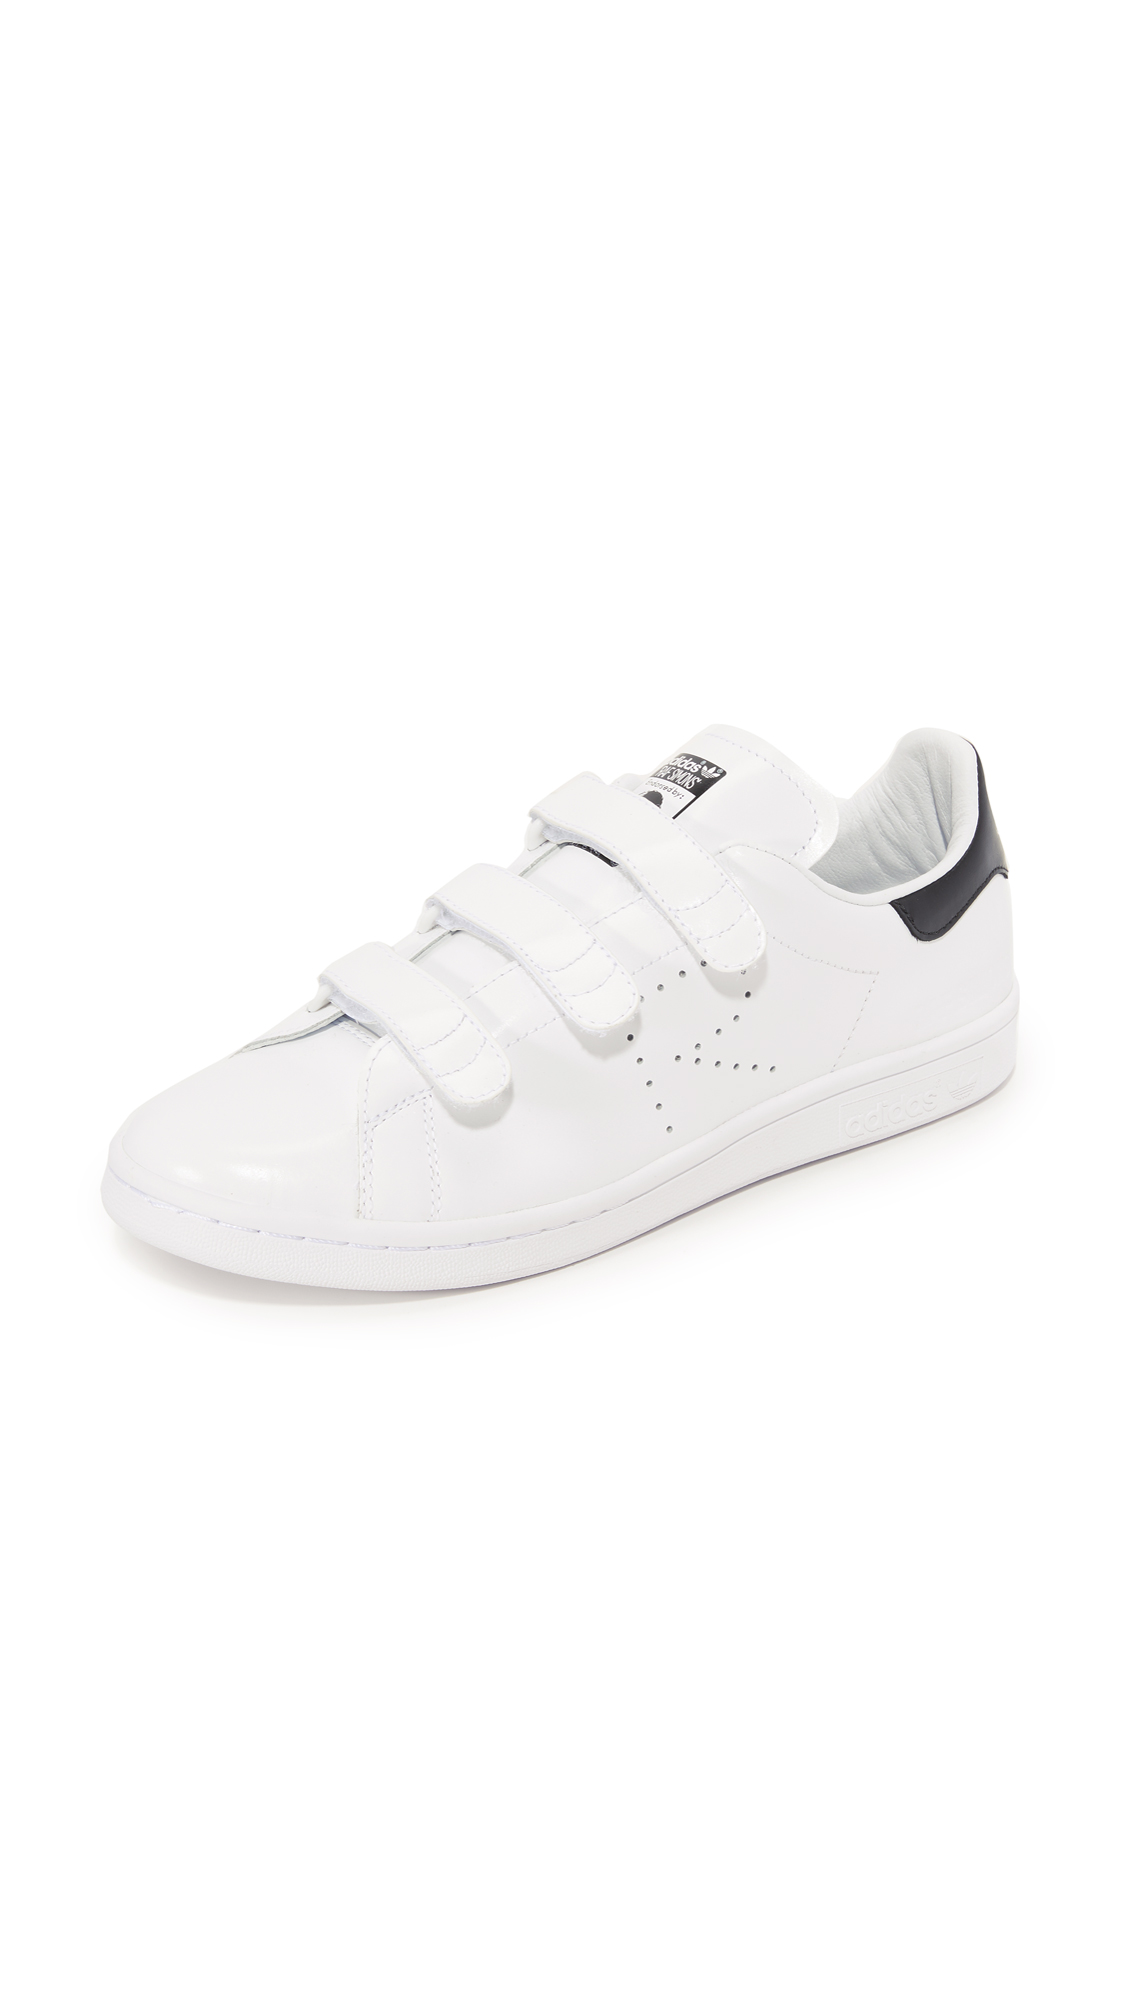 Adidas Raf Simons Stan Smith Sneakers - White/White/Black at Shopbop